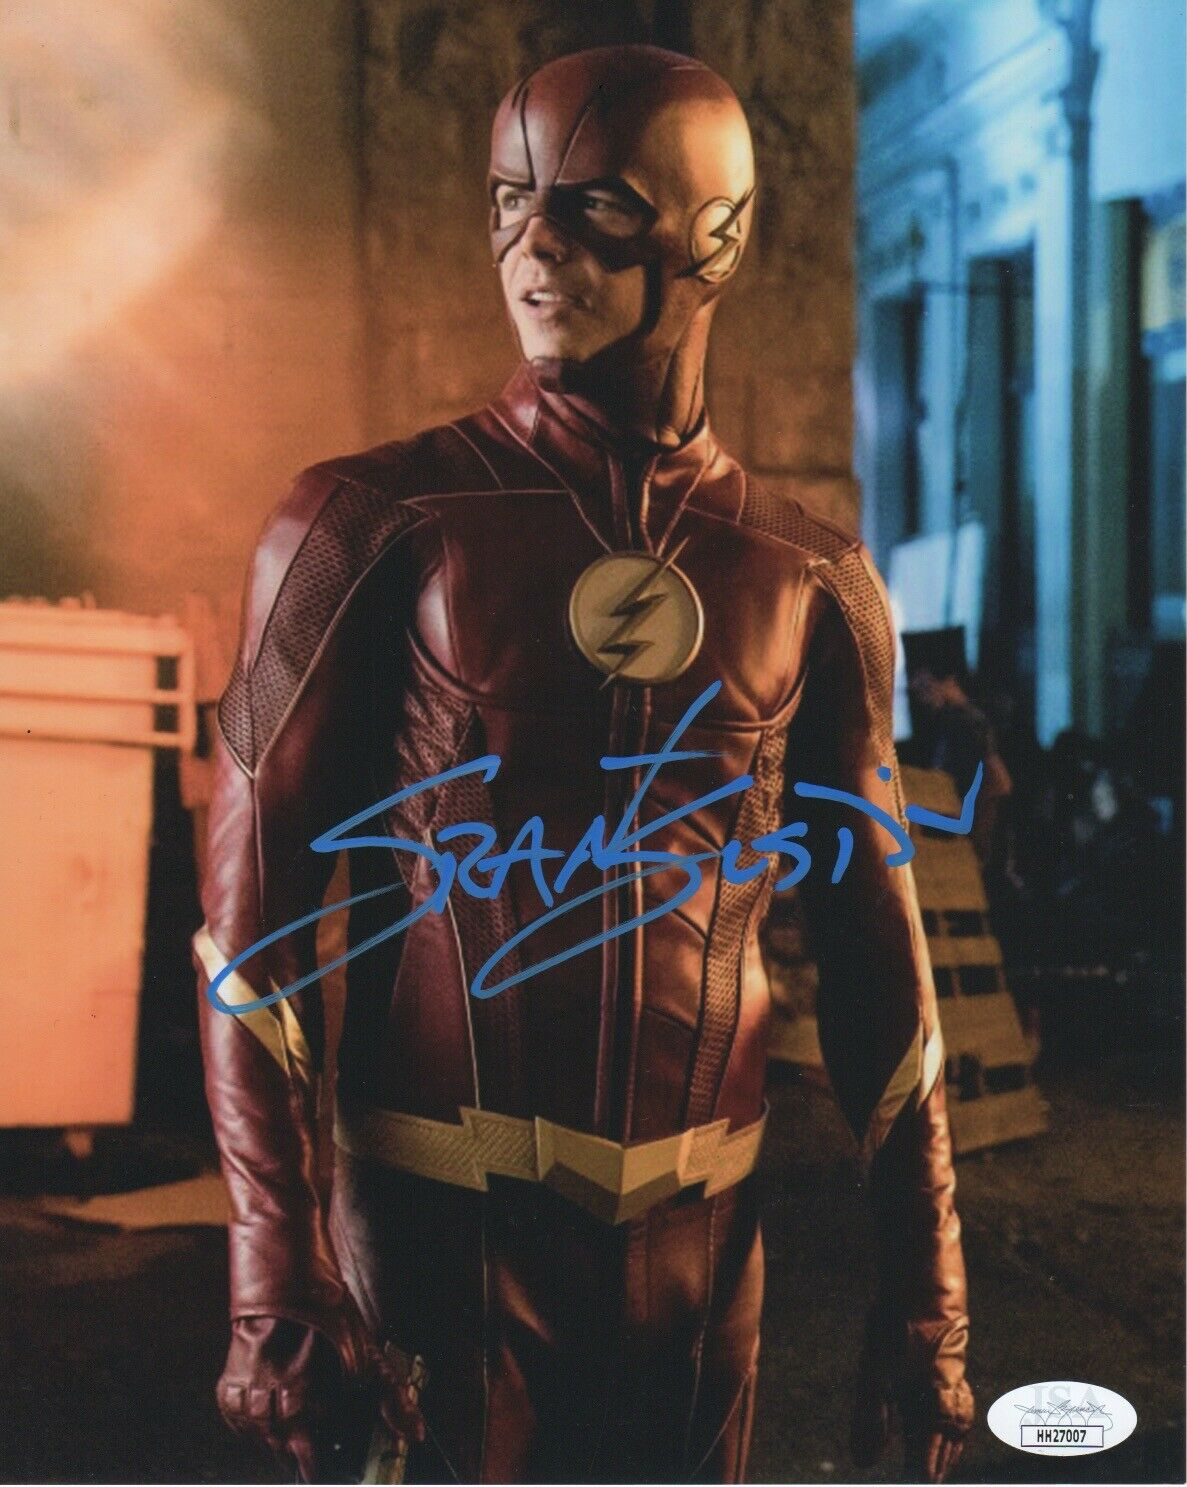 Grant Gustin The Flash Signed Autograph 8x10 Photo JSA - Outlaw Hobbies Authentic Autographs